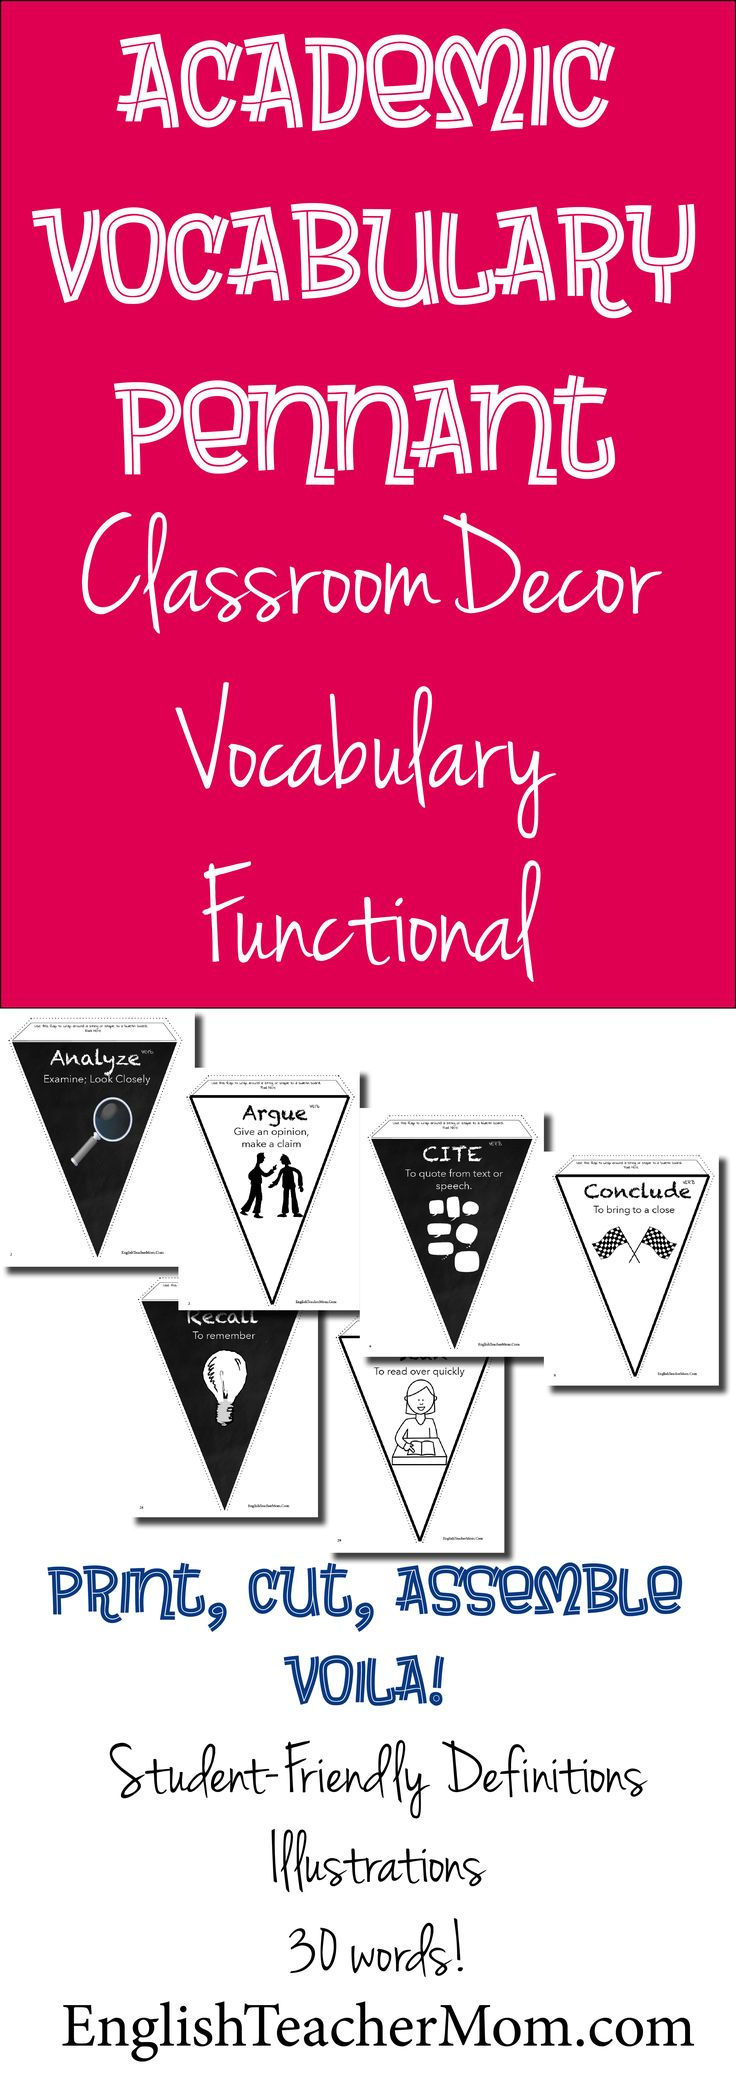 Academic Vocabulary Classroom Decor: Print, Cut, Arrange, and Done! 30 High-Use academic vocabulary words with student-friendly definitions, illustrations, and part-of-speech.  Perfect for English Classroom decor.